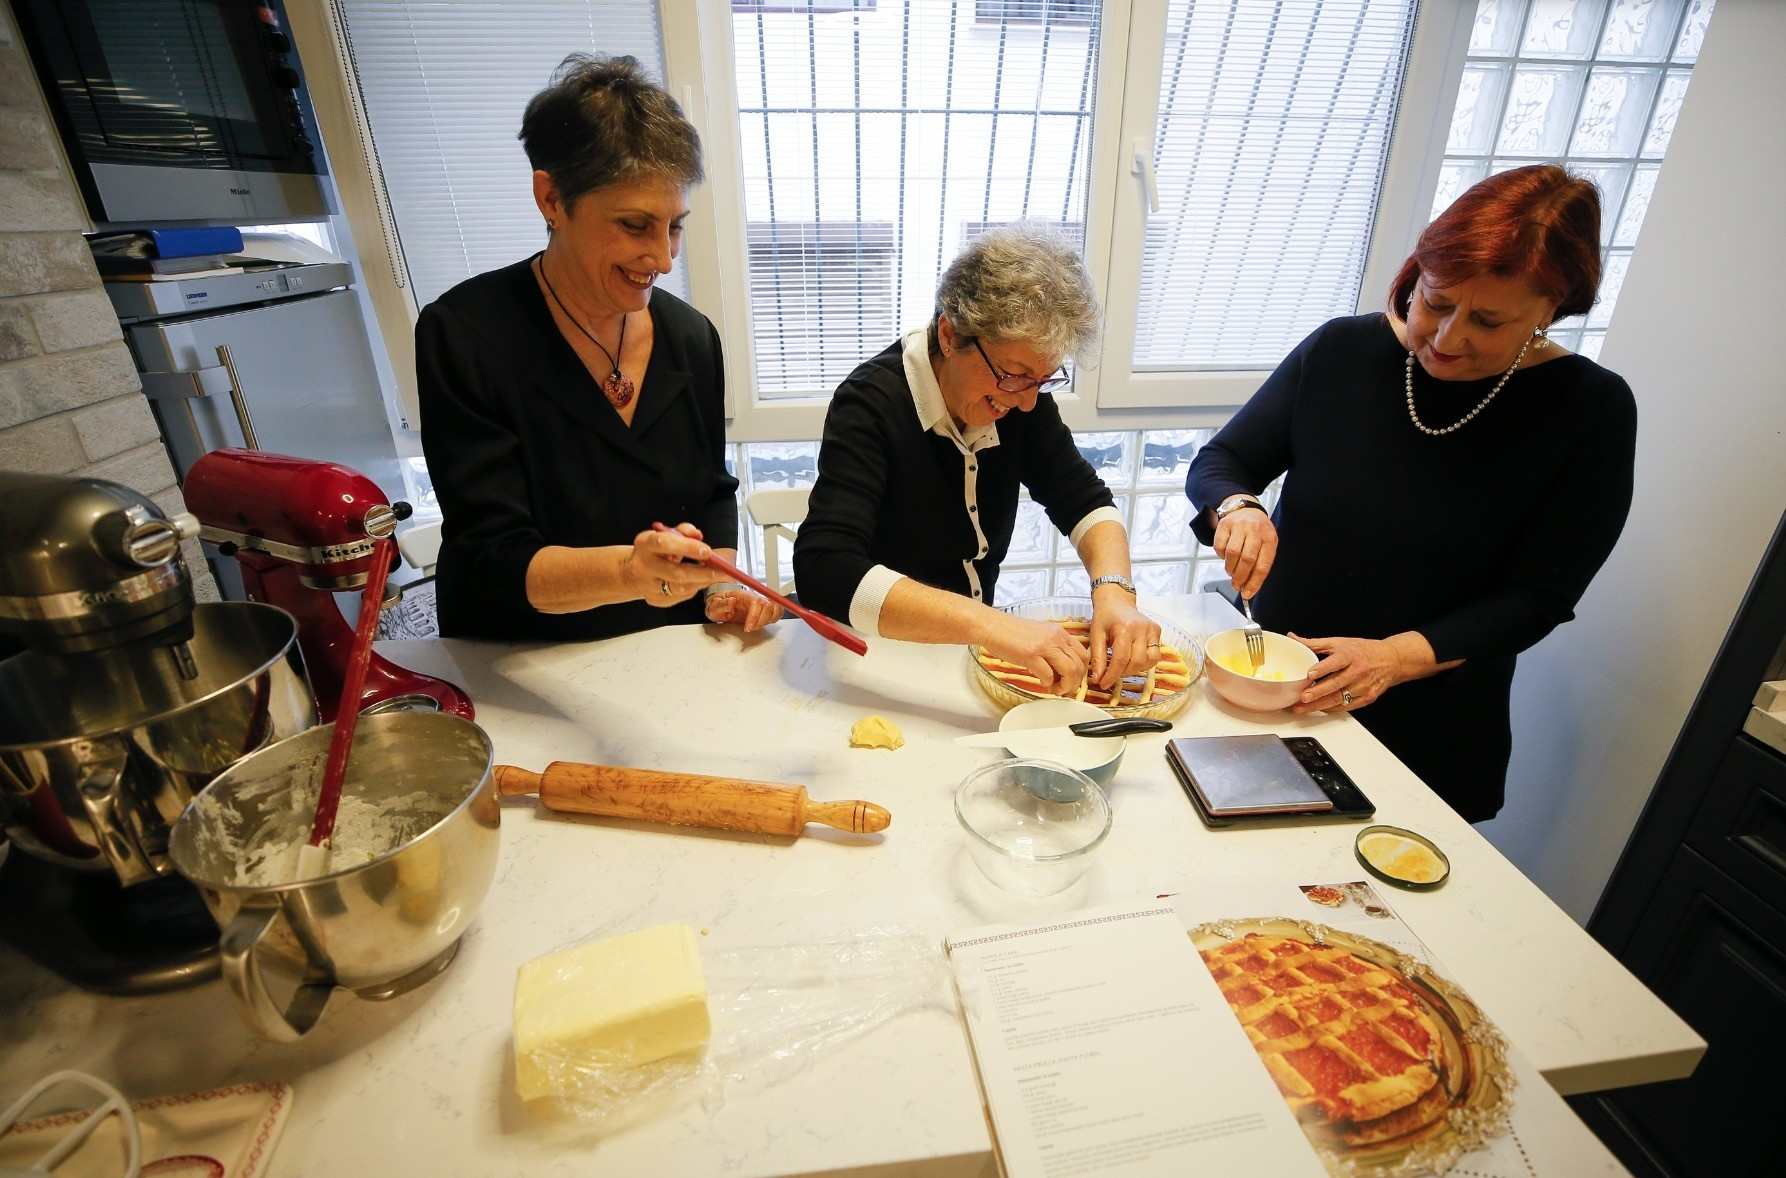 Lotte Filippucci Romano (R) and Ingrid Braggiotti cook one of the recipes from their cookbook u201cTraditional Recipes of the Levantine Cuisine.u201d